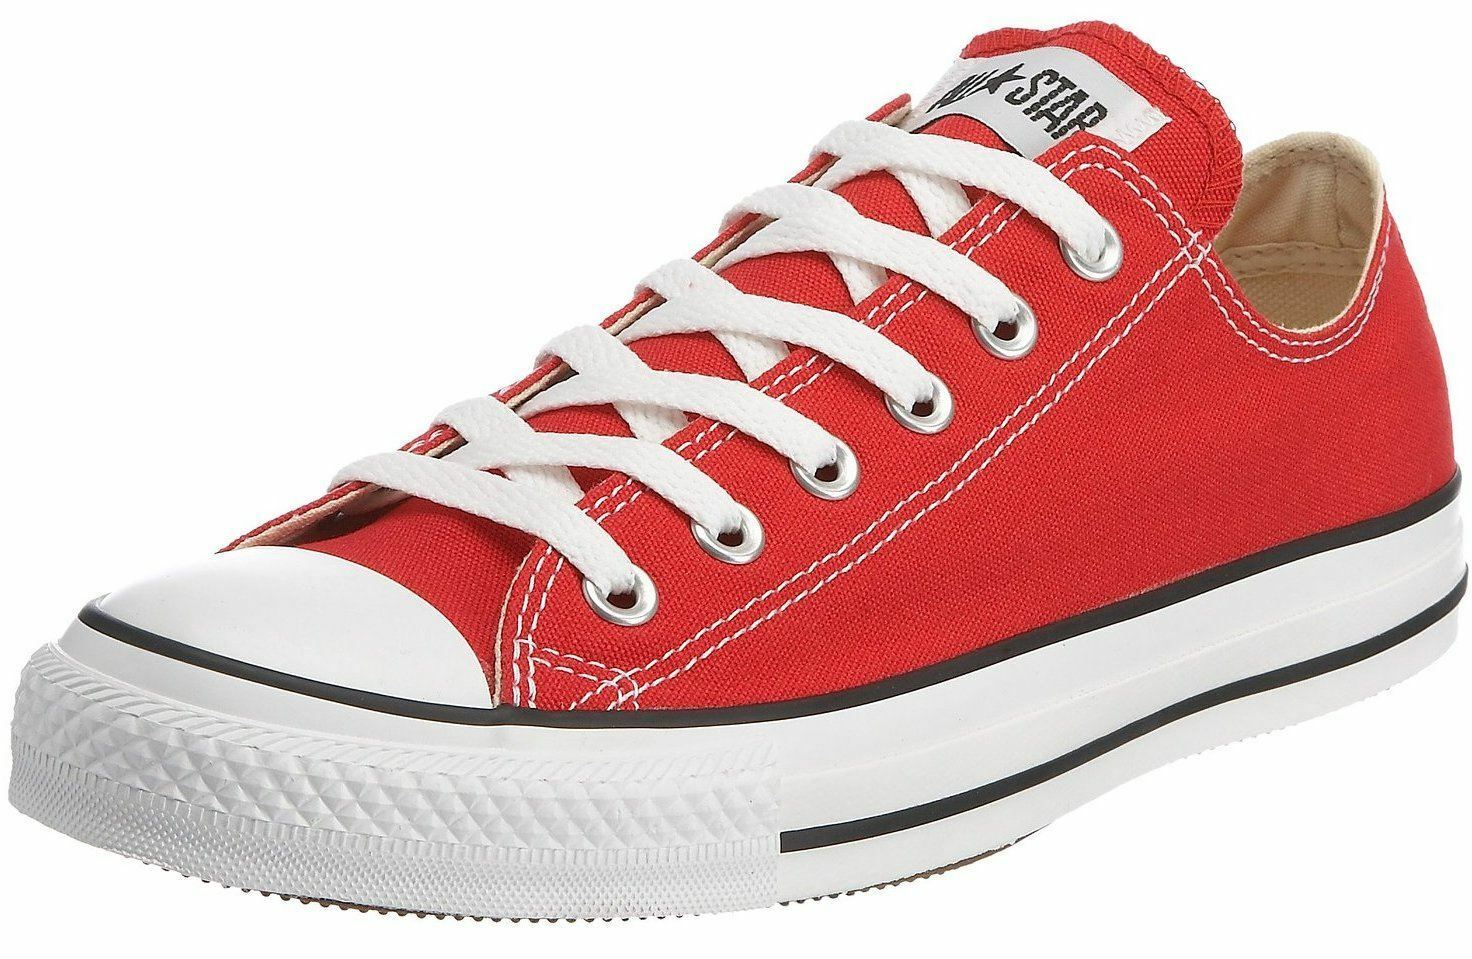 Converse Chuck Taylor All Star ROT WEISS Lo Unisex Trainers Stiefel